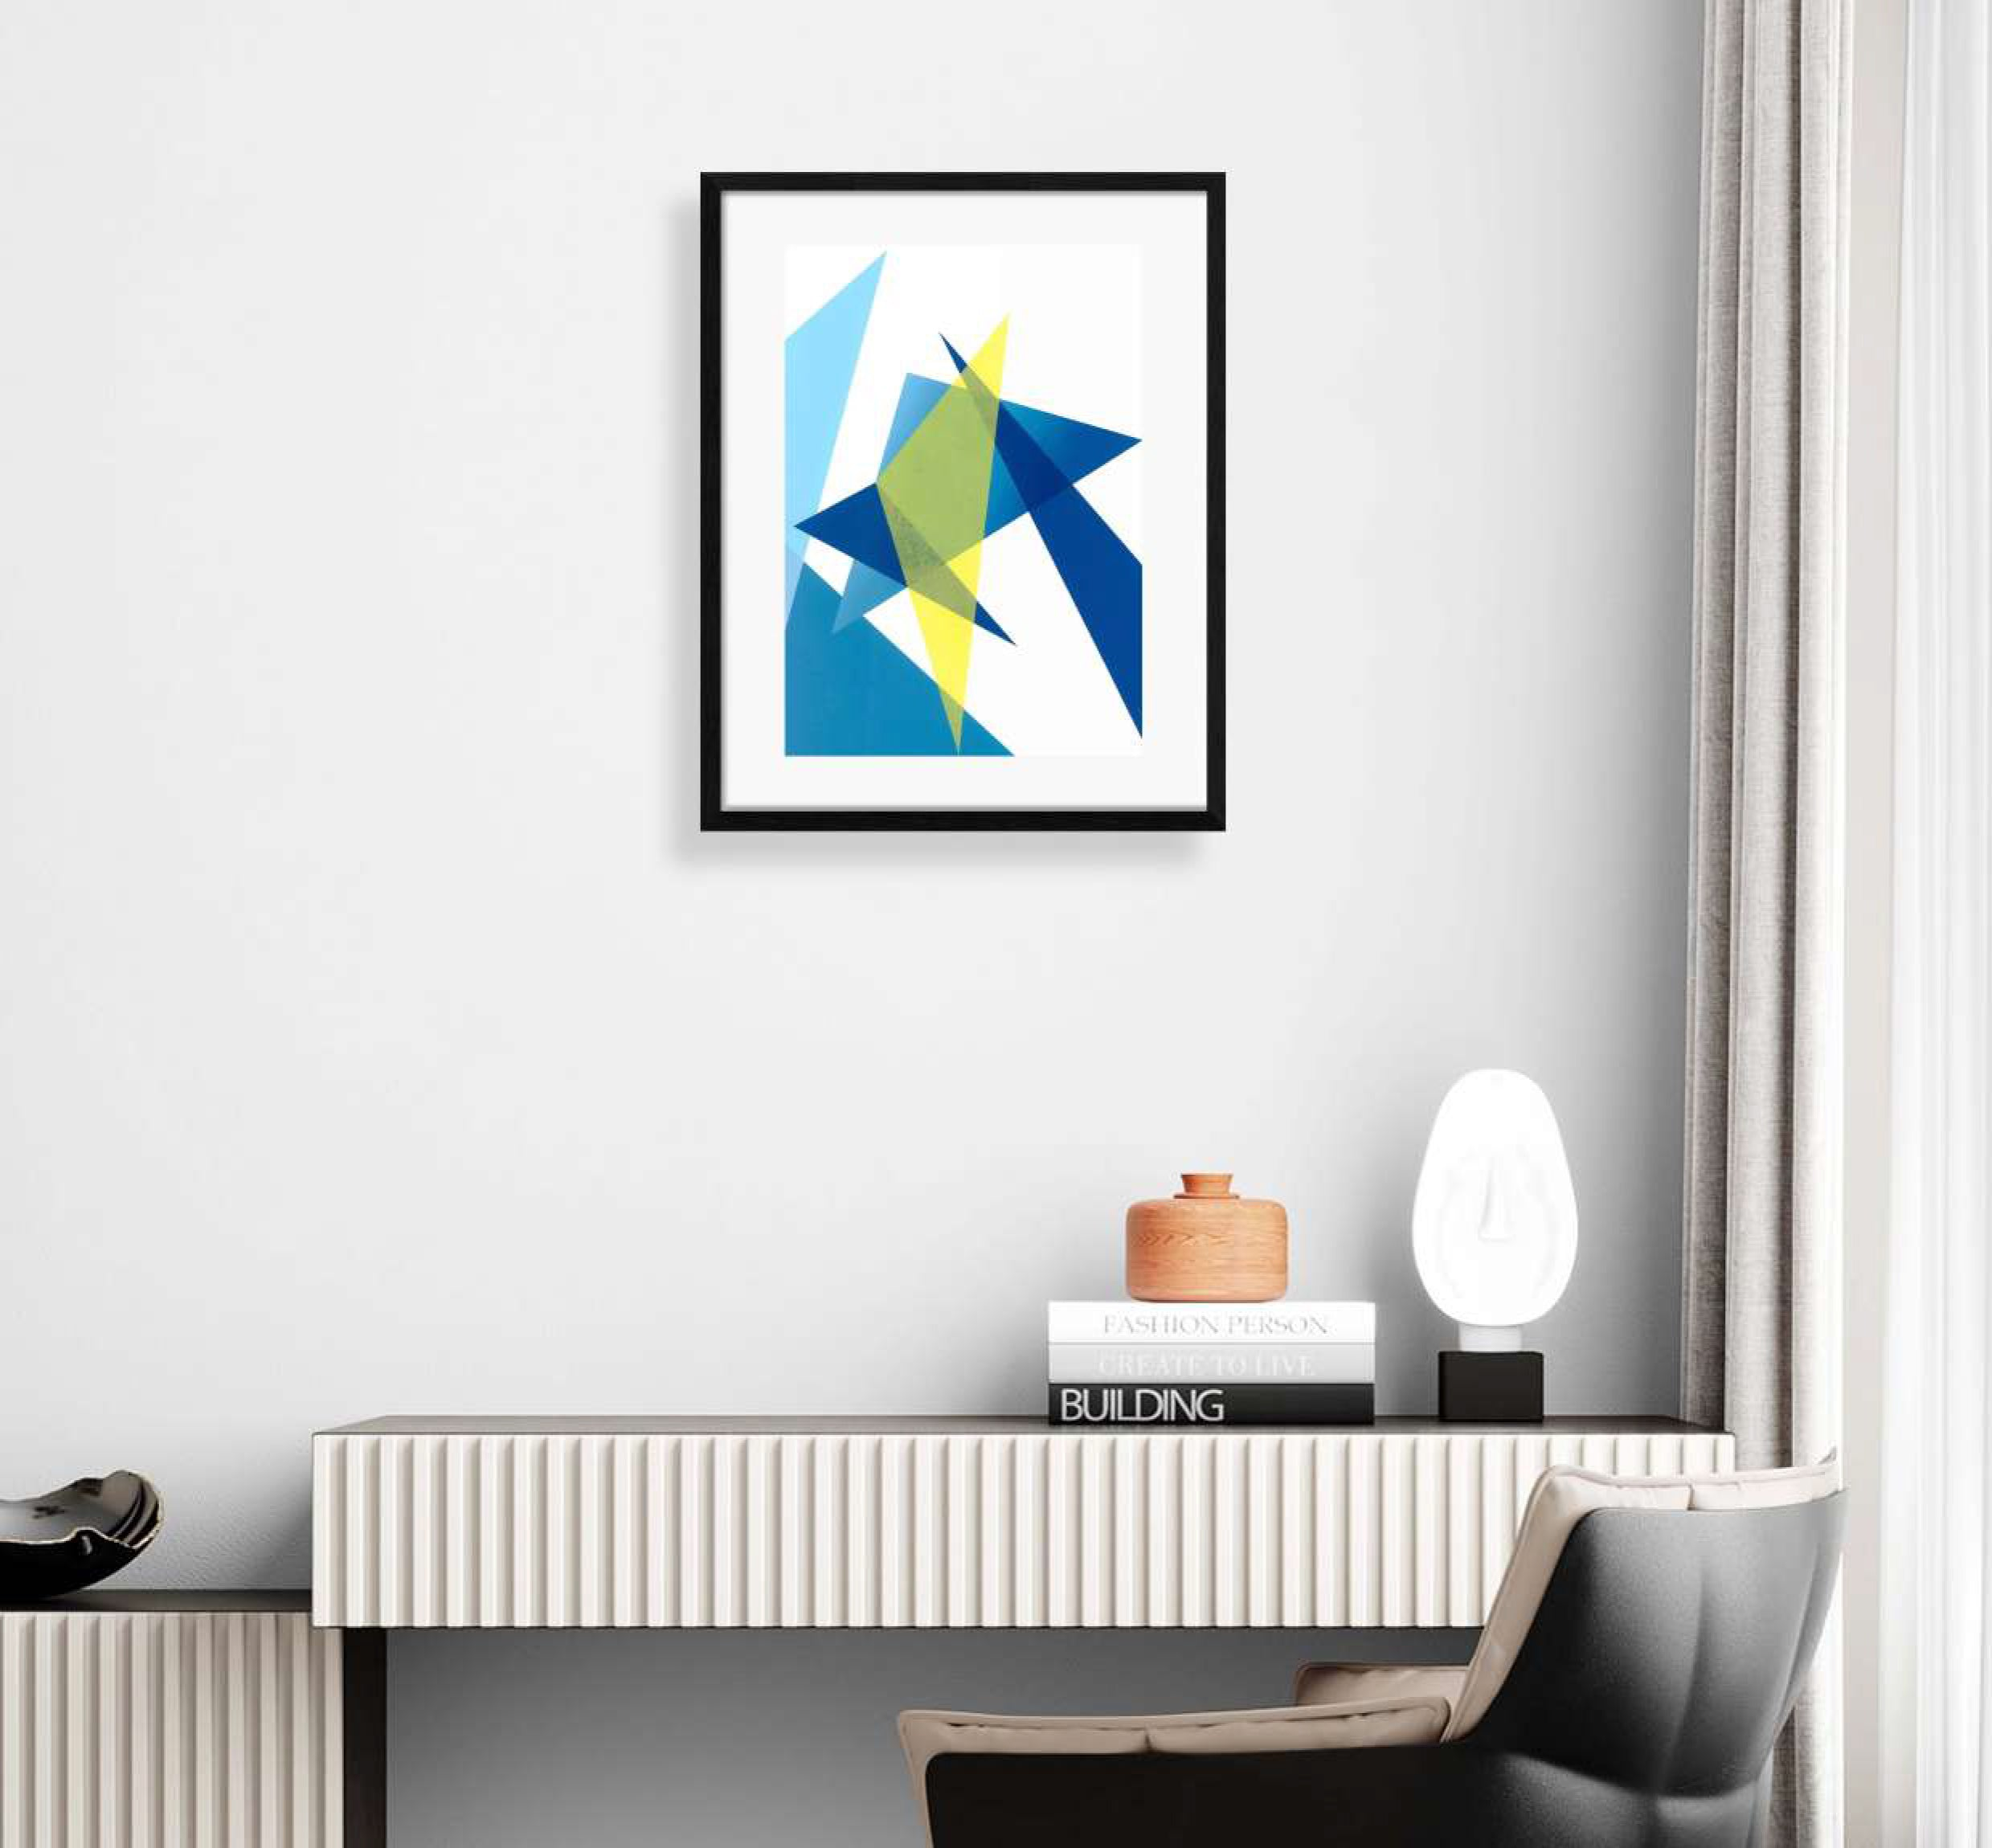 interior display of framed blue and yellow geometric shaped print